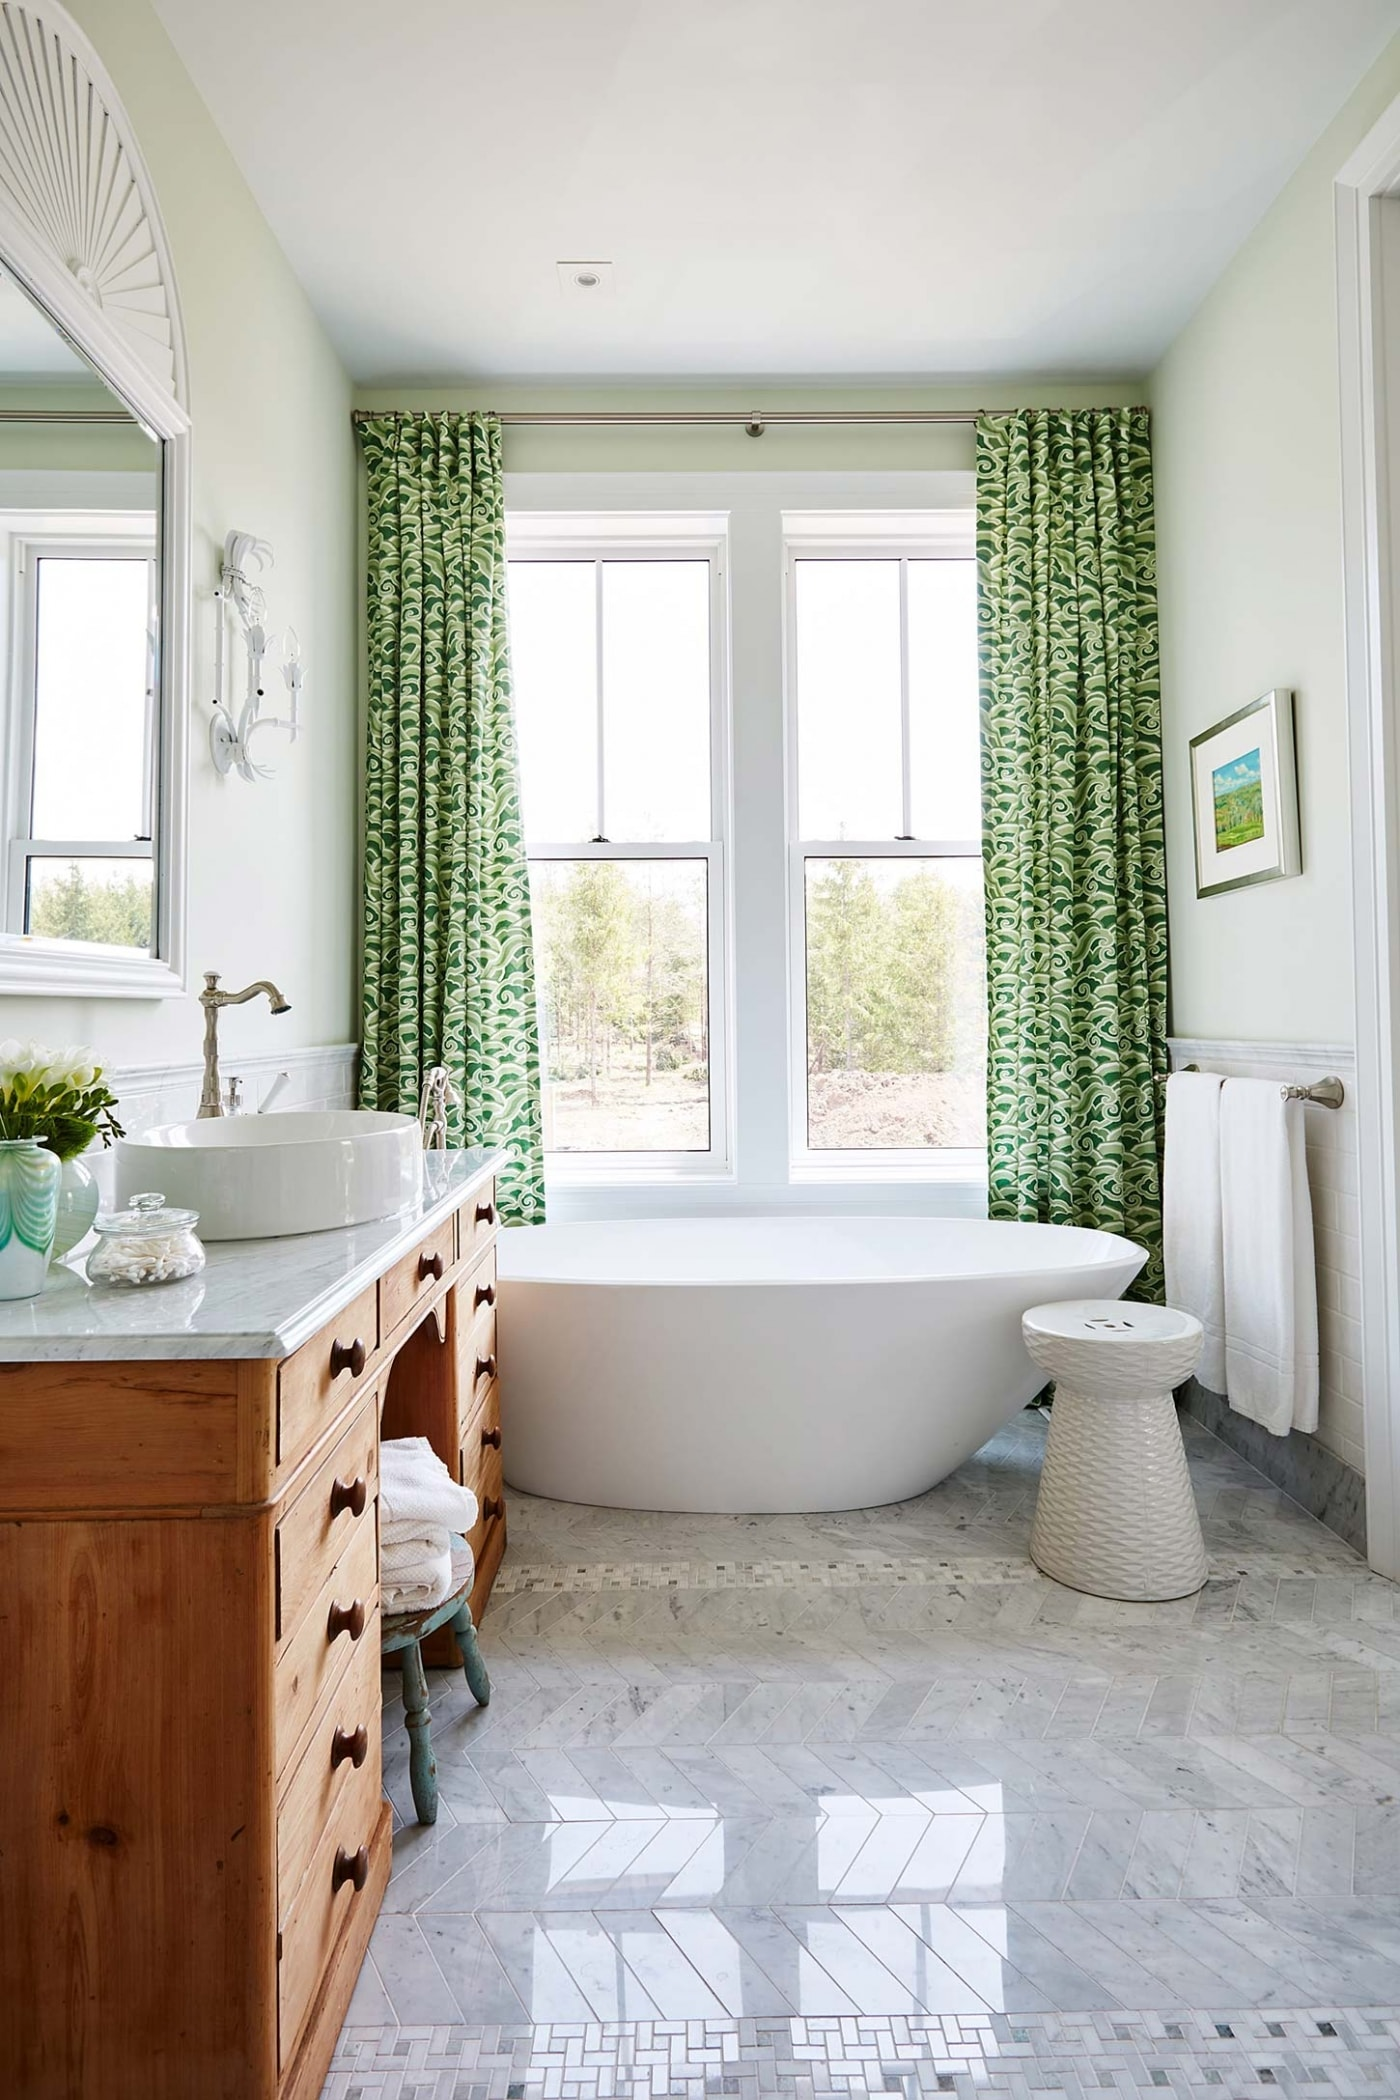 Gorgeous green bathroom with window, vintage wood vanity, and green patterned curtains - design by Sarah Richardson